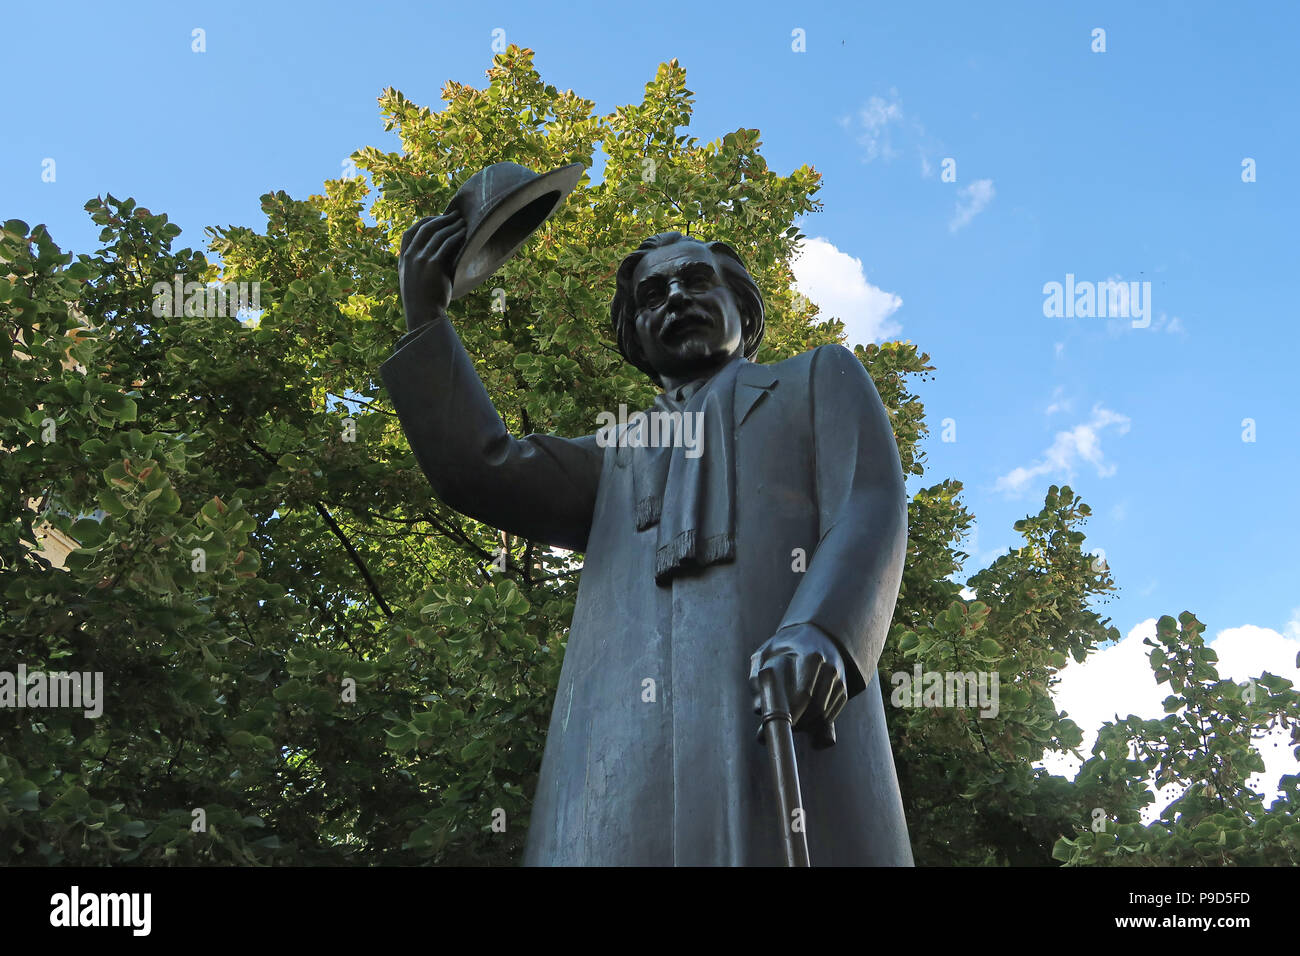 Memorial statue of Solomon Naumovich Rabinovich, better known under his pen name Sholem Aleichem who was a Jewish leading Yiddish author and playwright erected in front of a museum bearing his name in Kiev capital of Ukraine before immigrating to Israel - Stock Image